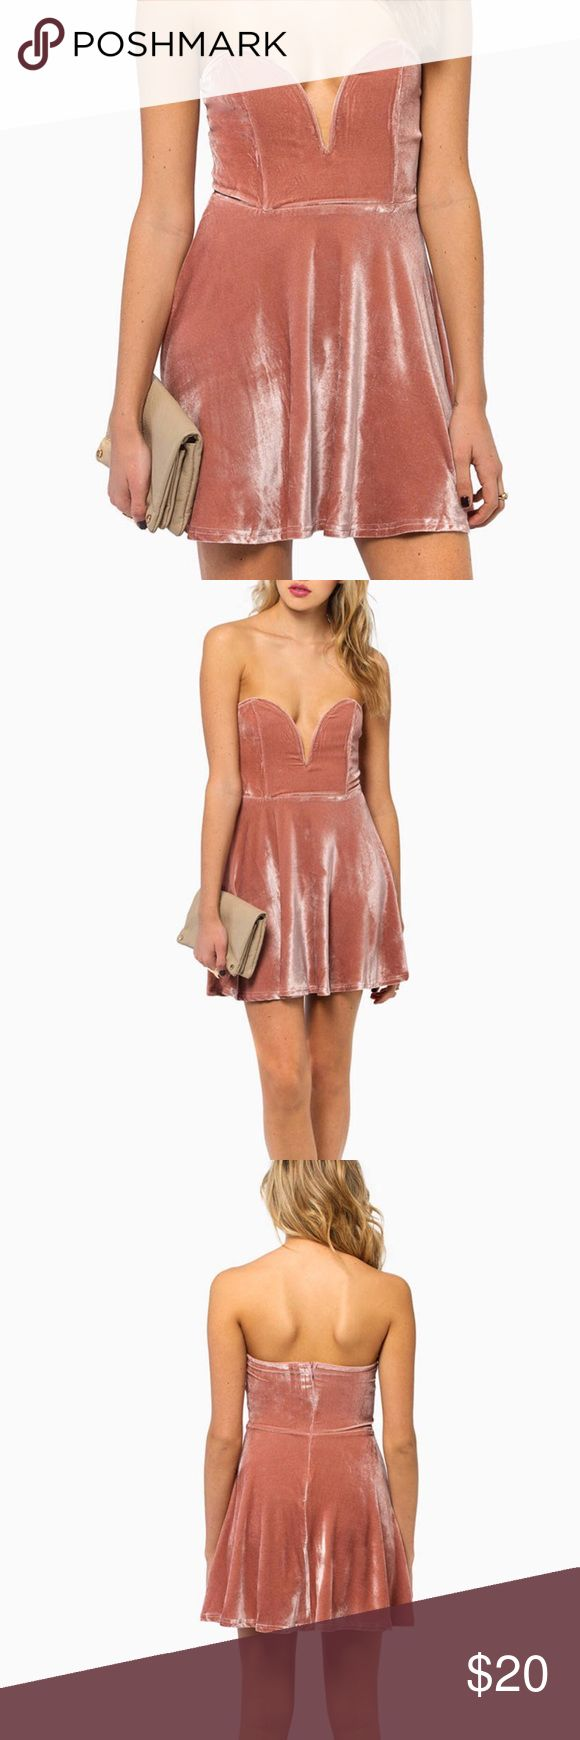 NWT 🔴Velvet Blush Nude Pink Flirty Dress The perfect combination of Flirty and Cute!  NWT and never worn. Perfect for Spring and Summer. Size Small but fits more for XS and Small tags: #festival #pink #tobi #asos #zara #forever21 #nordstrom #topshop #spring #flirty Tobi Dresses Mini